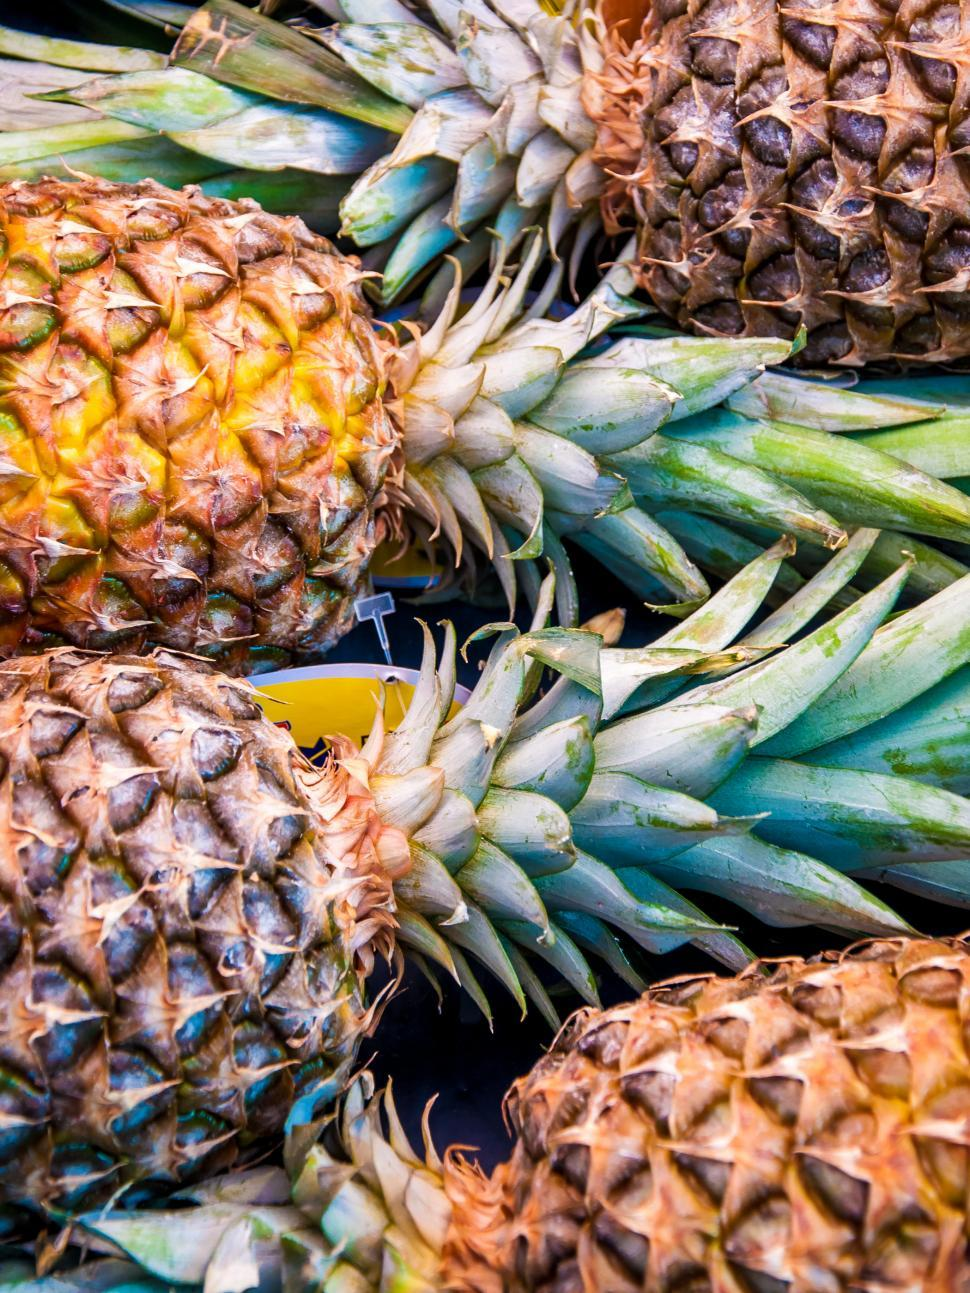 Download Free Stock HD Photo of A lot of pineapple fruit background Online